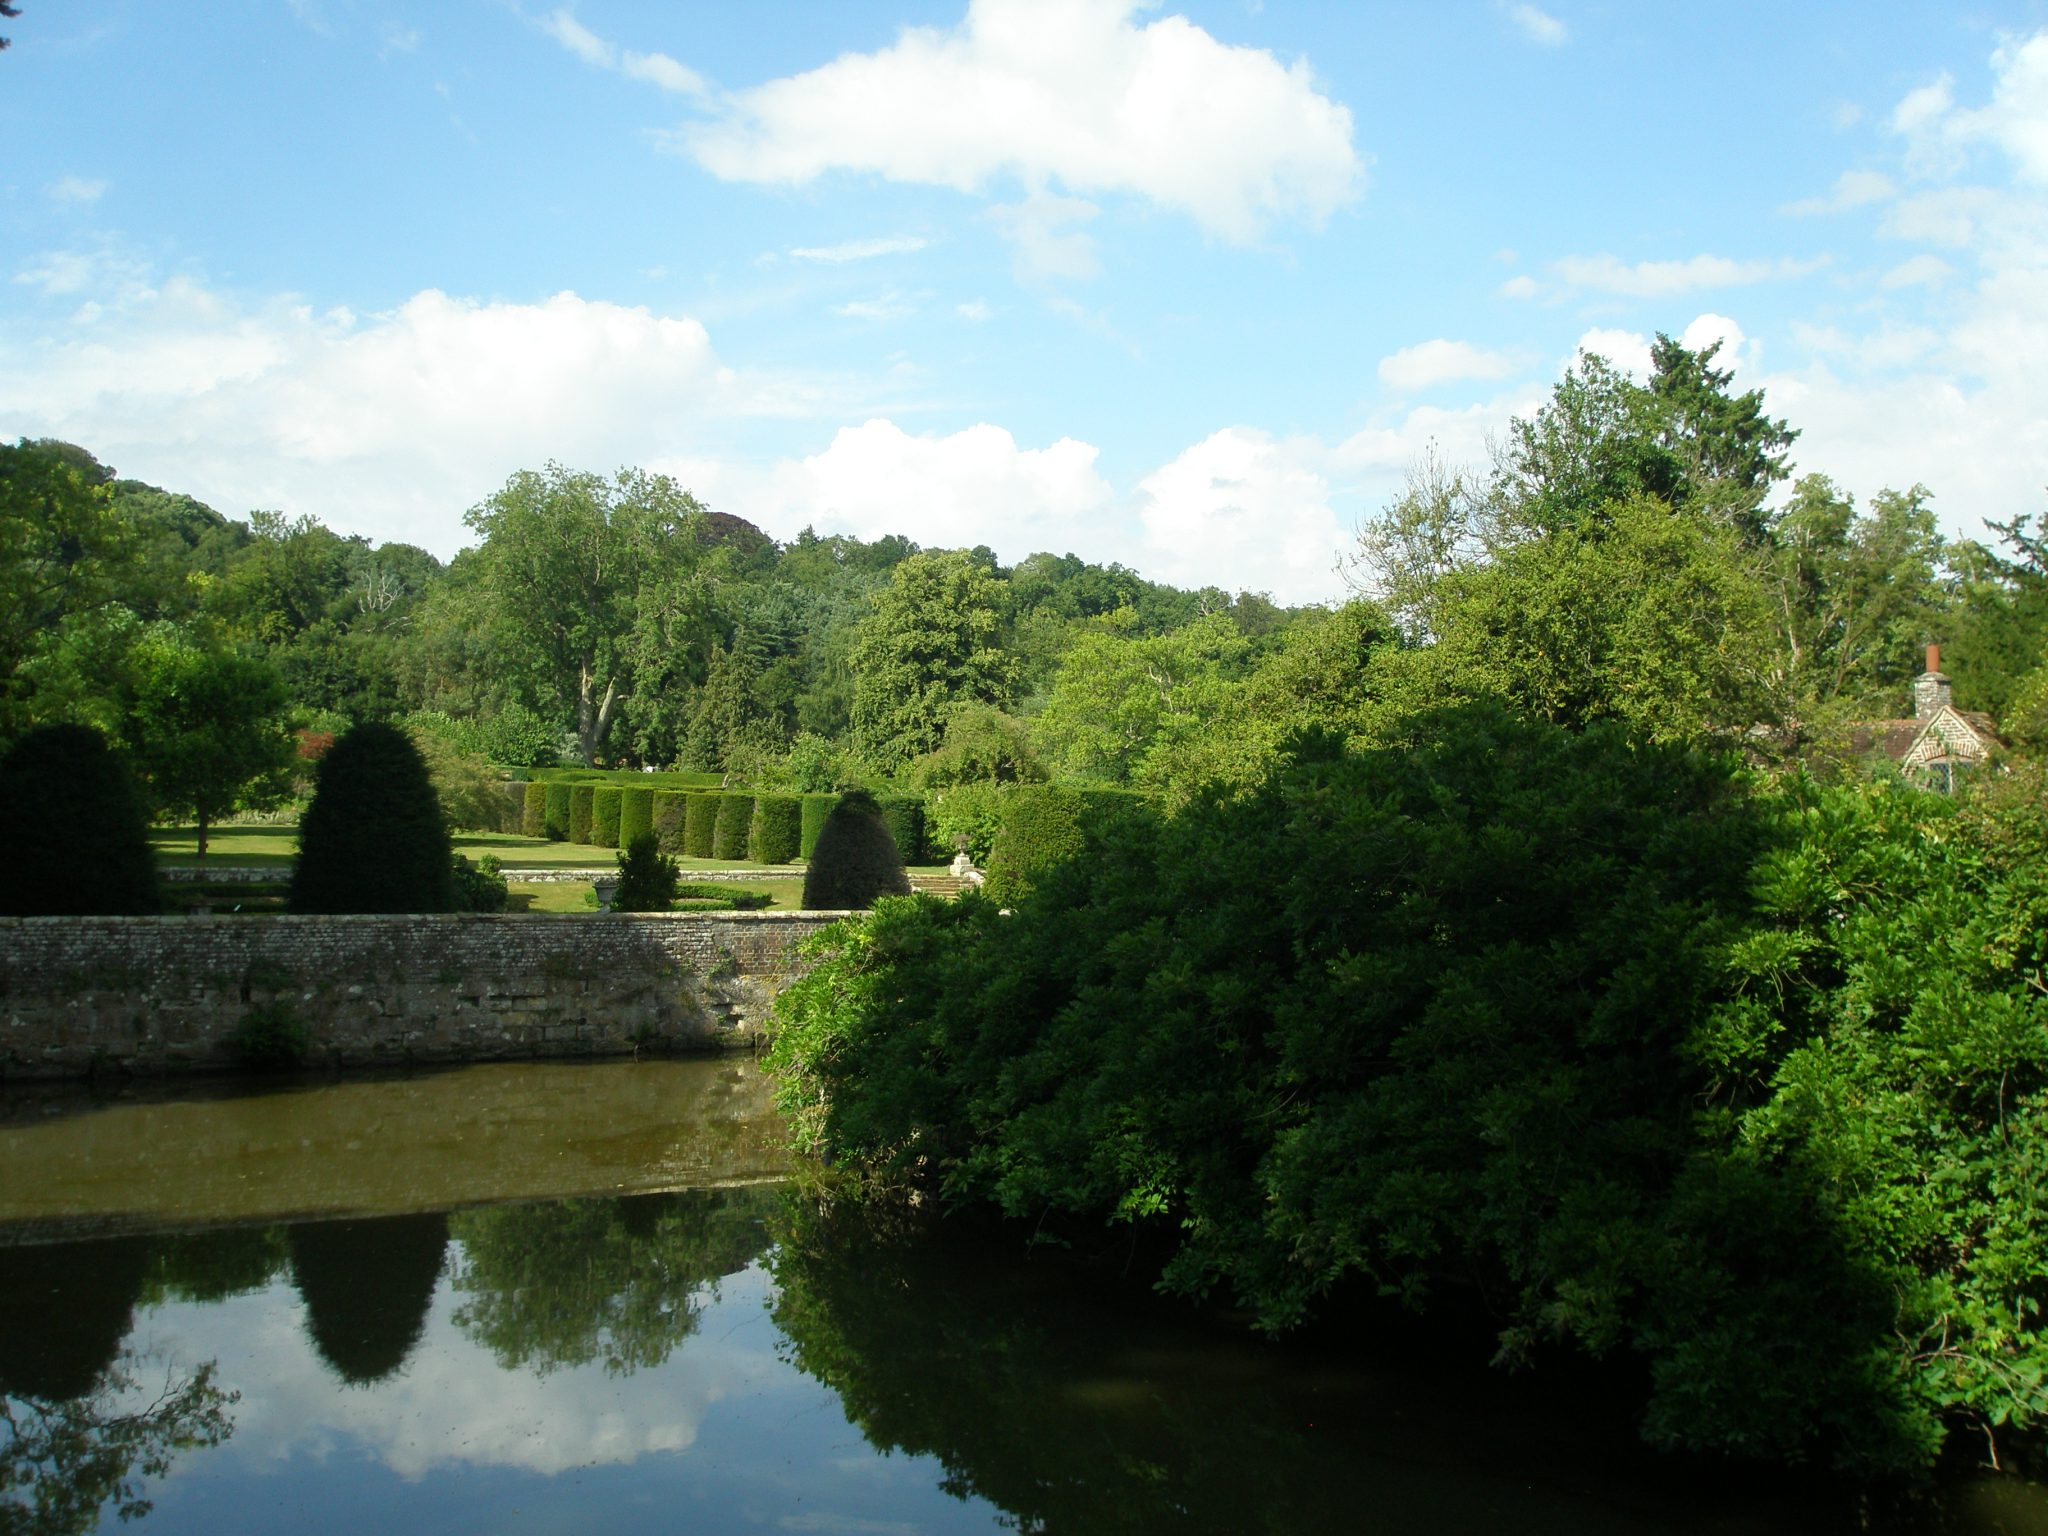 View of Gardens, from the Front Bridge